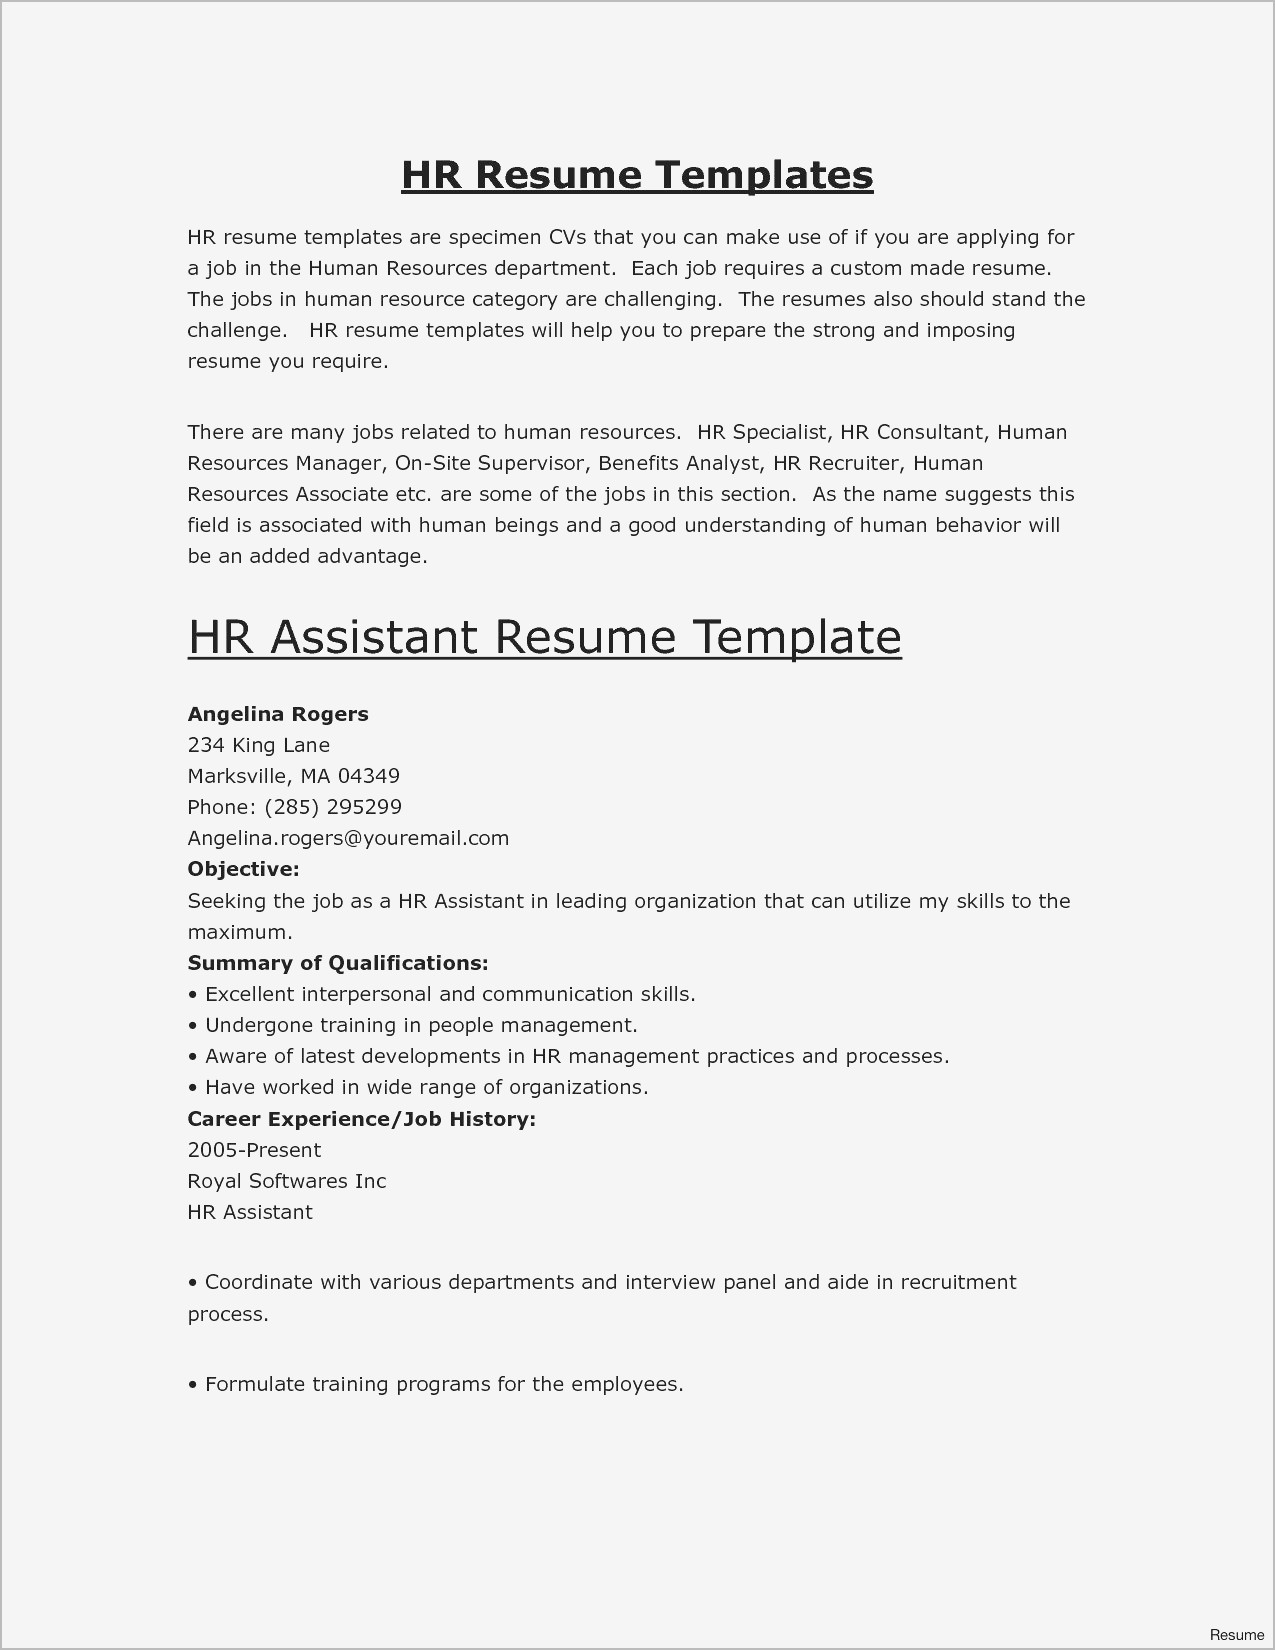 bartender duties for resume example-Bartender Duties Resume 22 Bartender Duties Resume 12-n